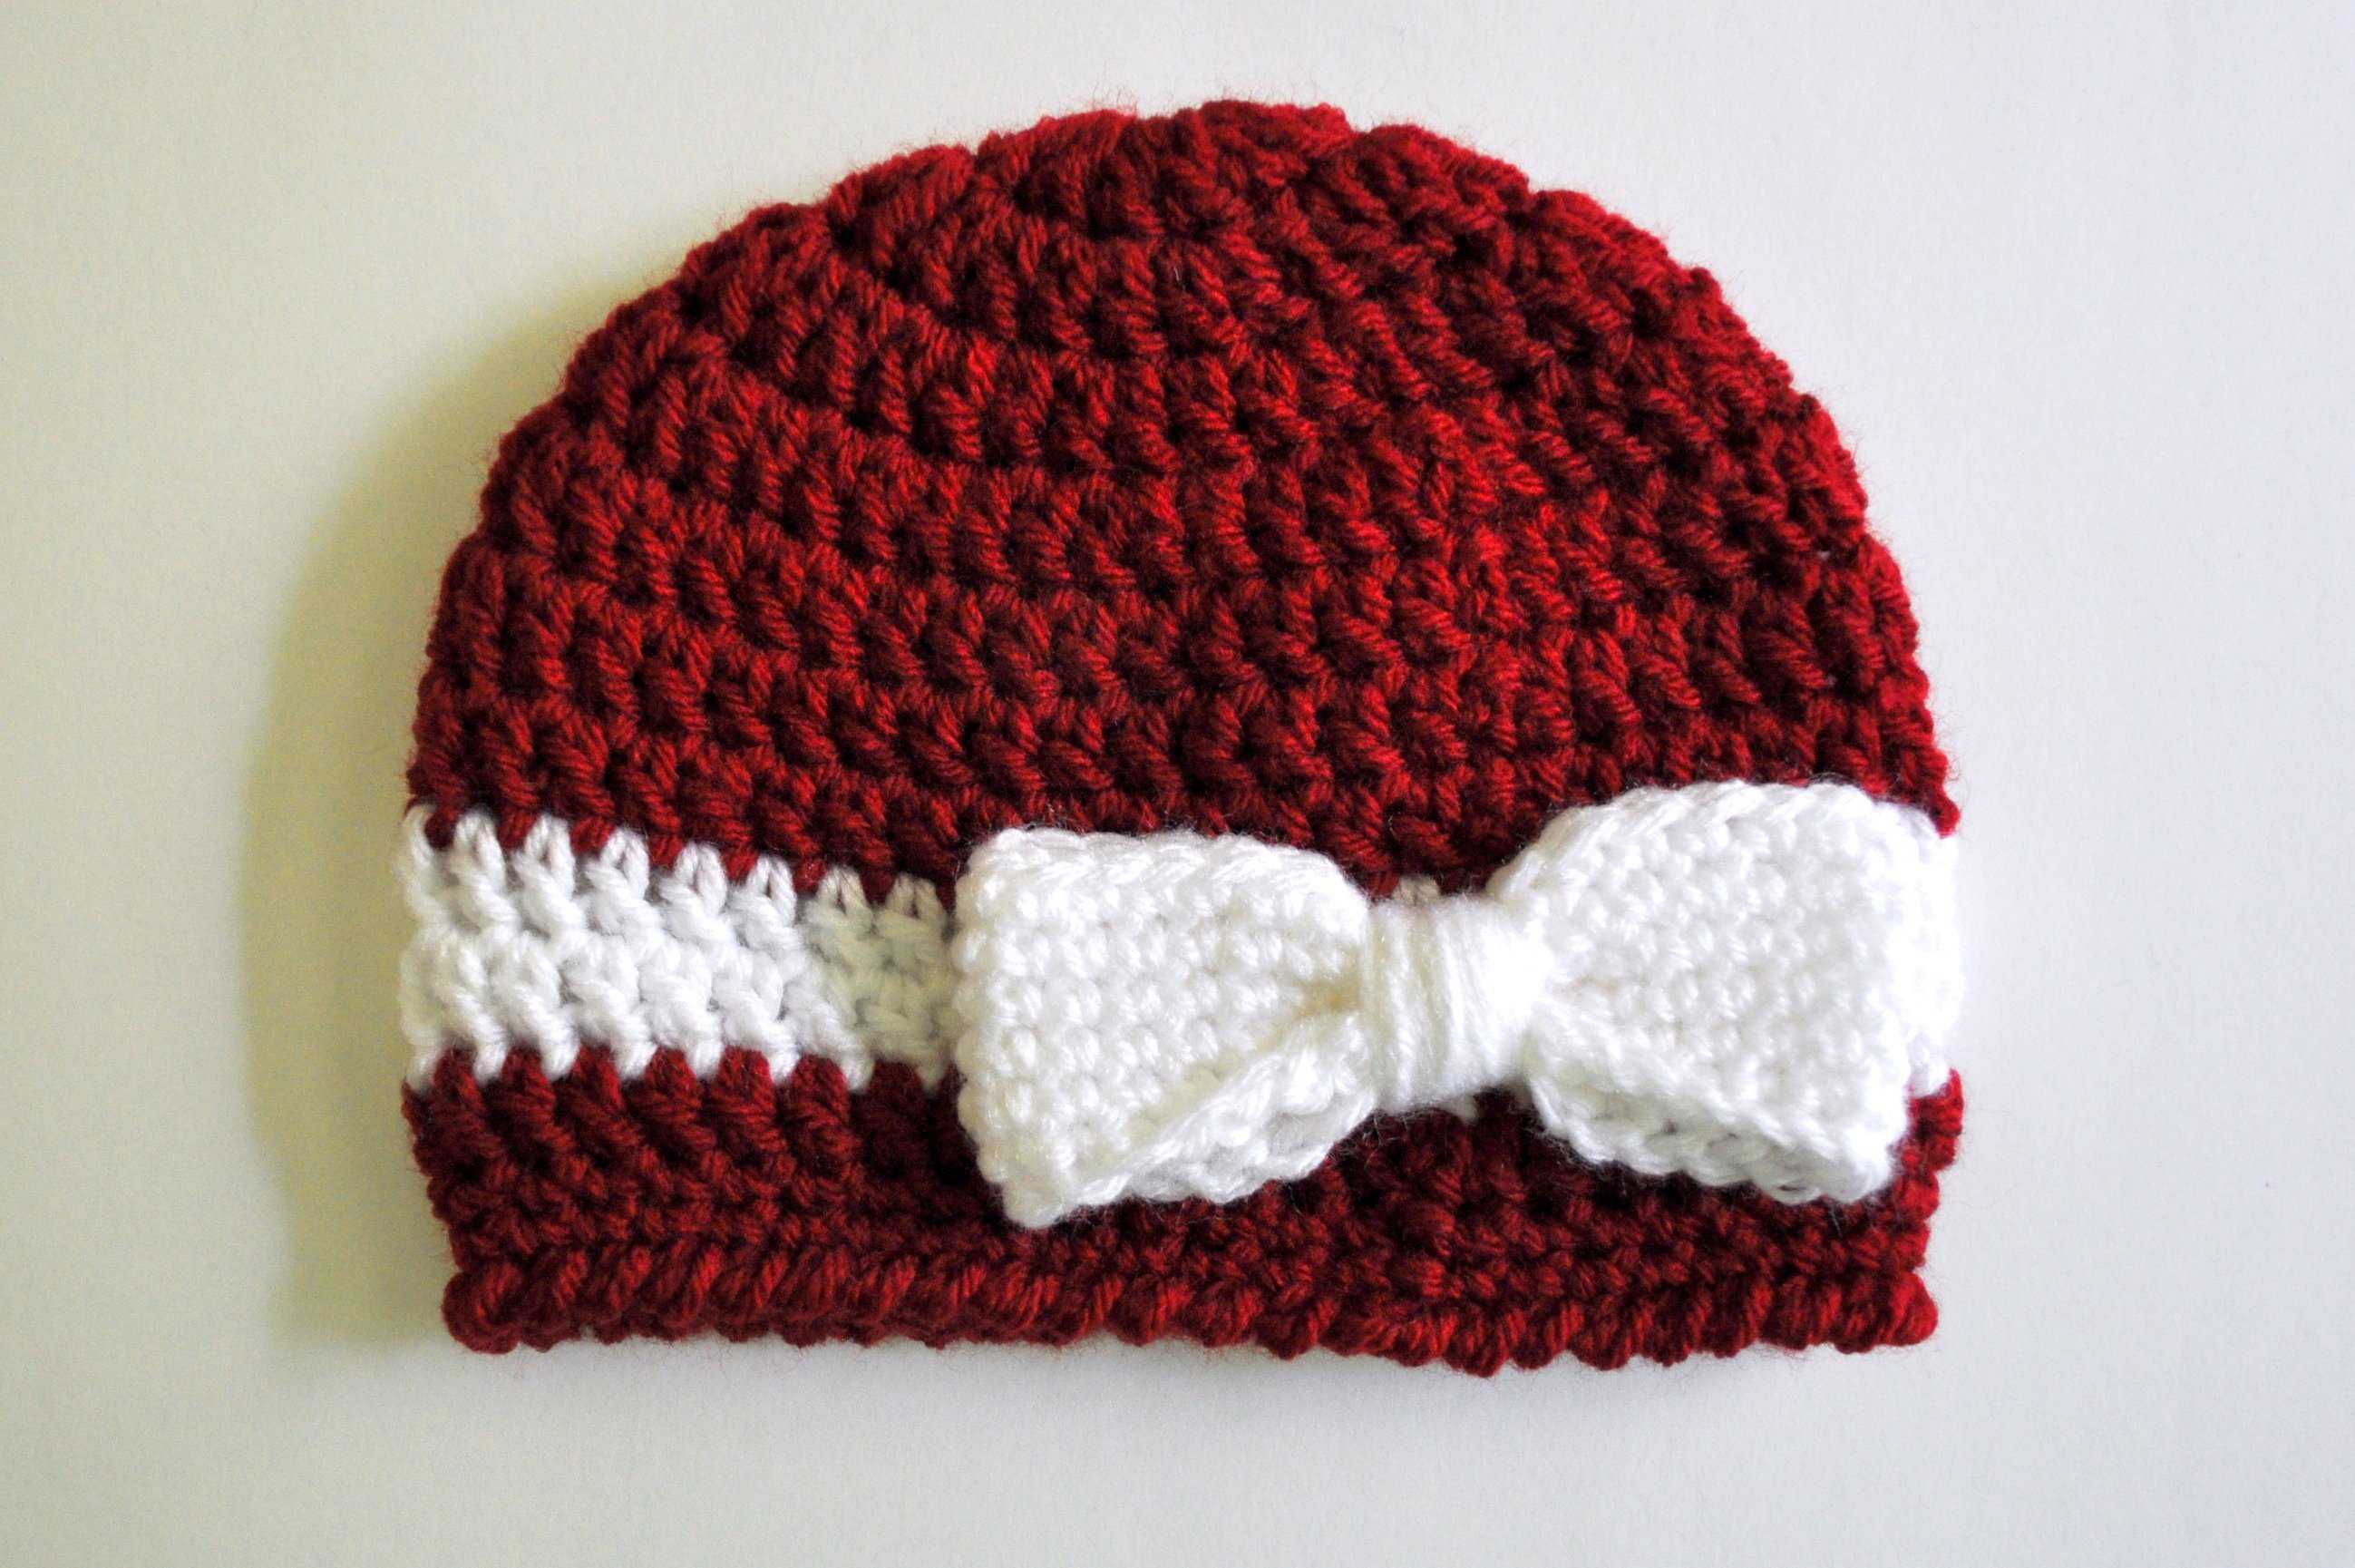 Free Patterns Crochet Winter Hats : 25 Easy Crochet Bow Patterns Guide Patterns